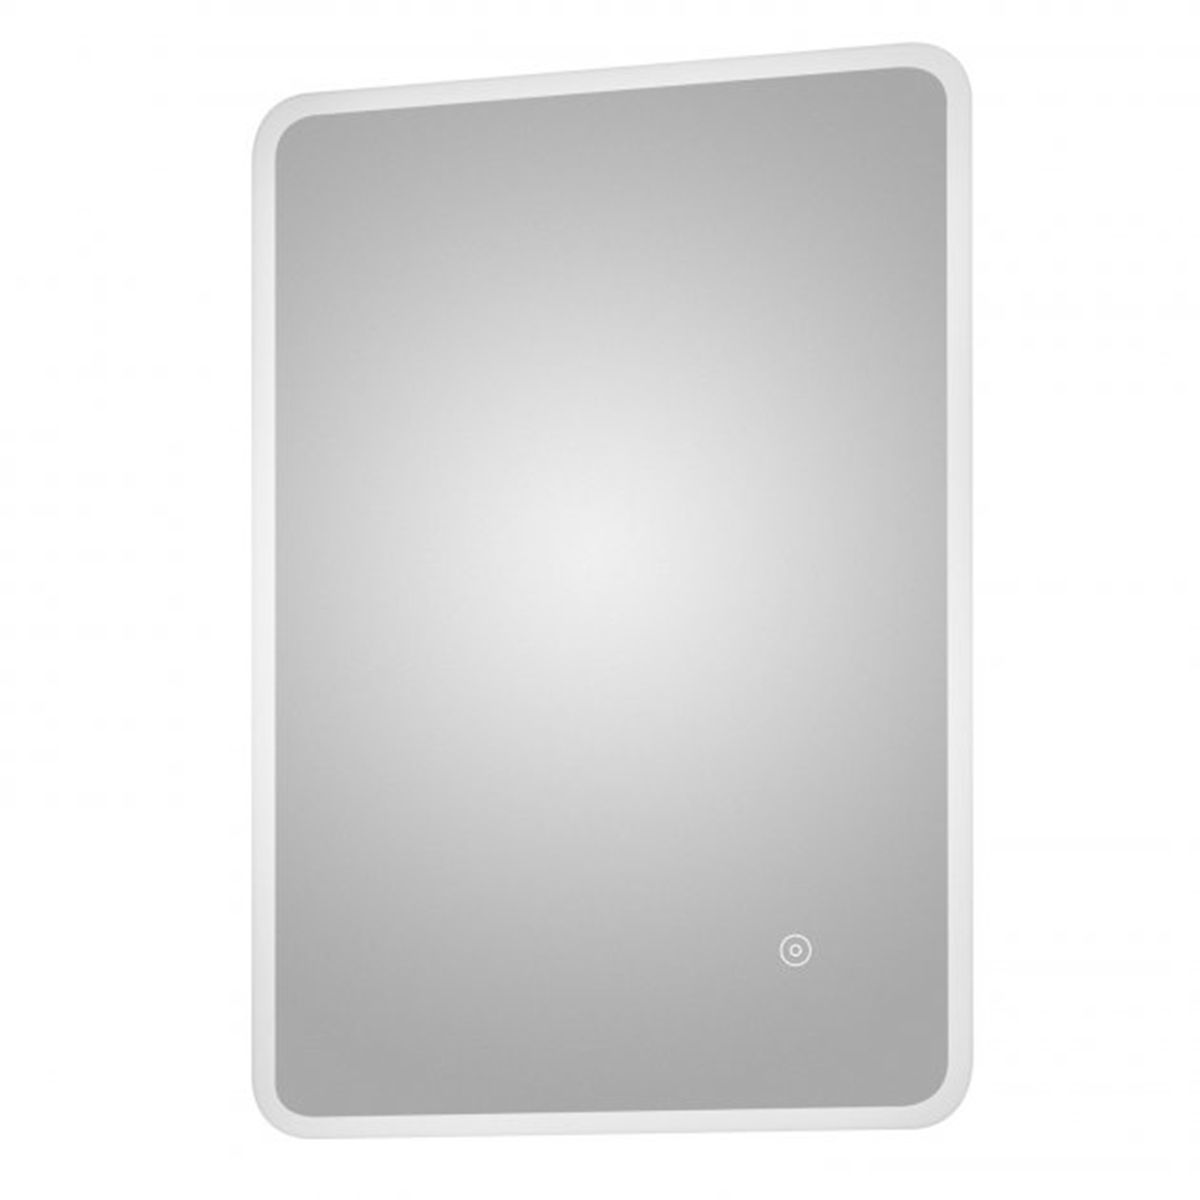 Hudson Reed 700 x 500 Ambient Mirror